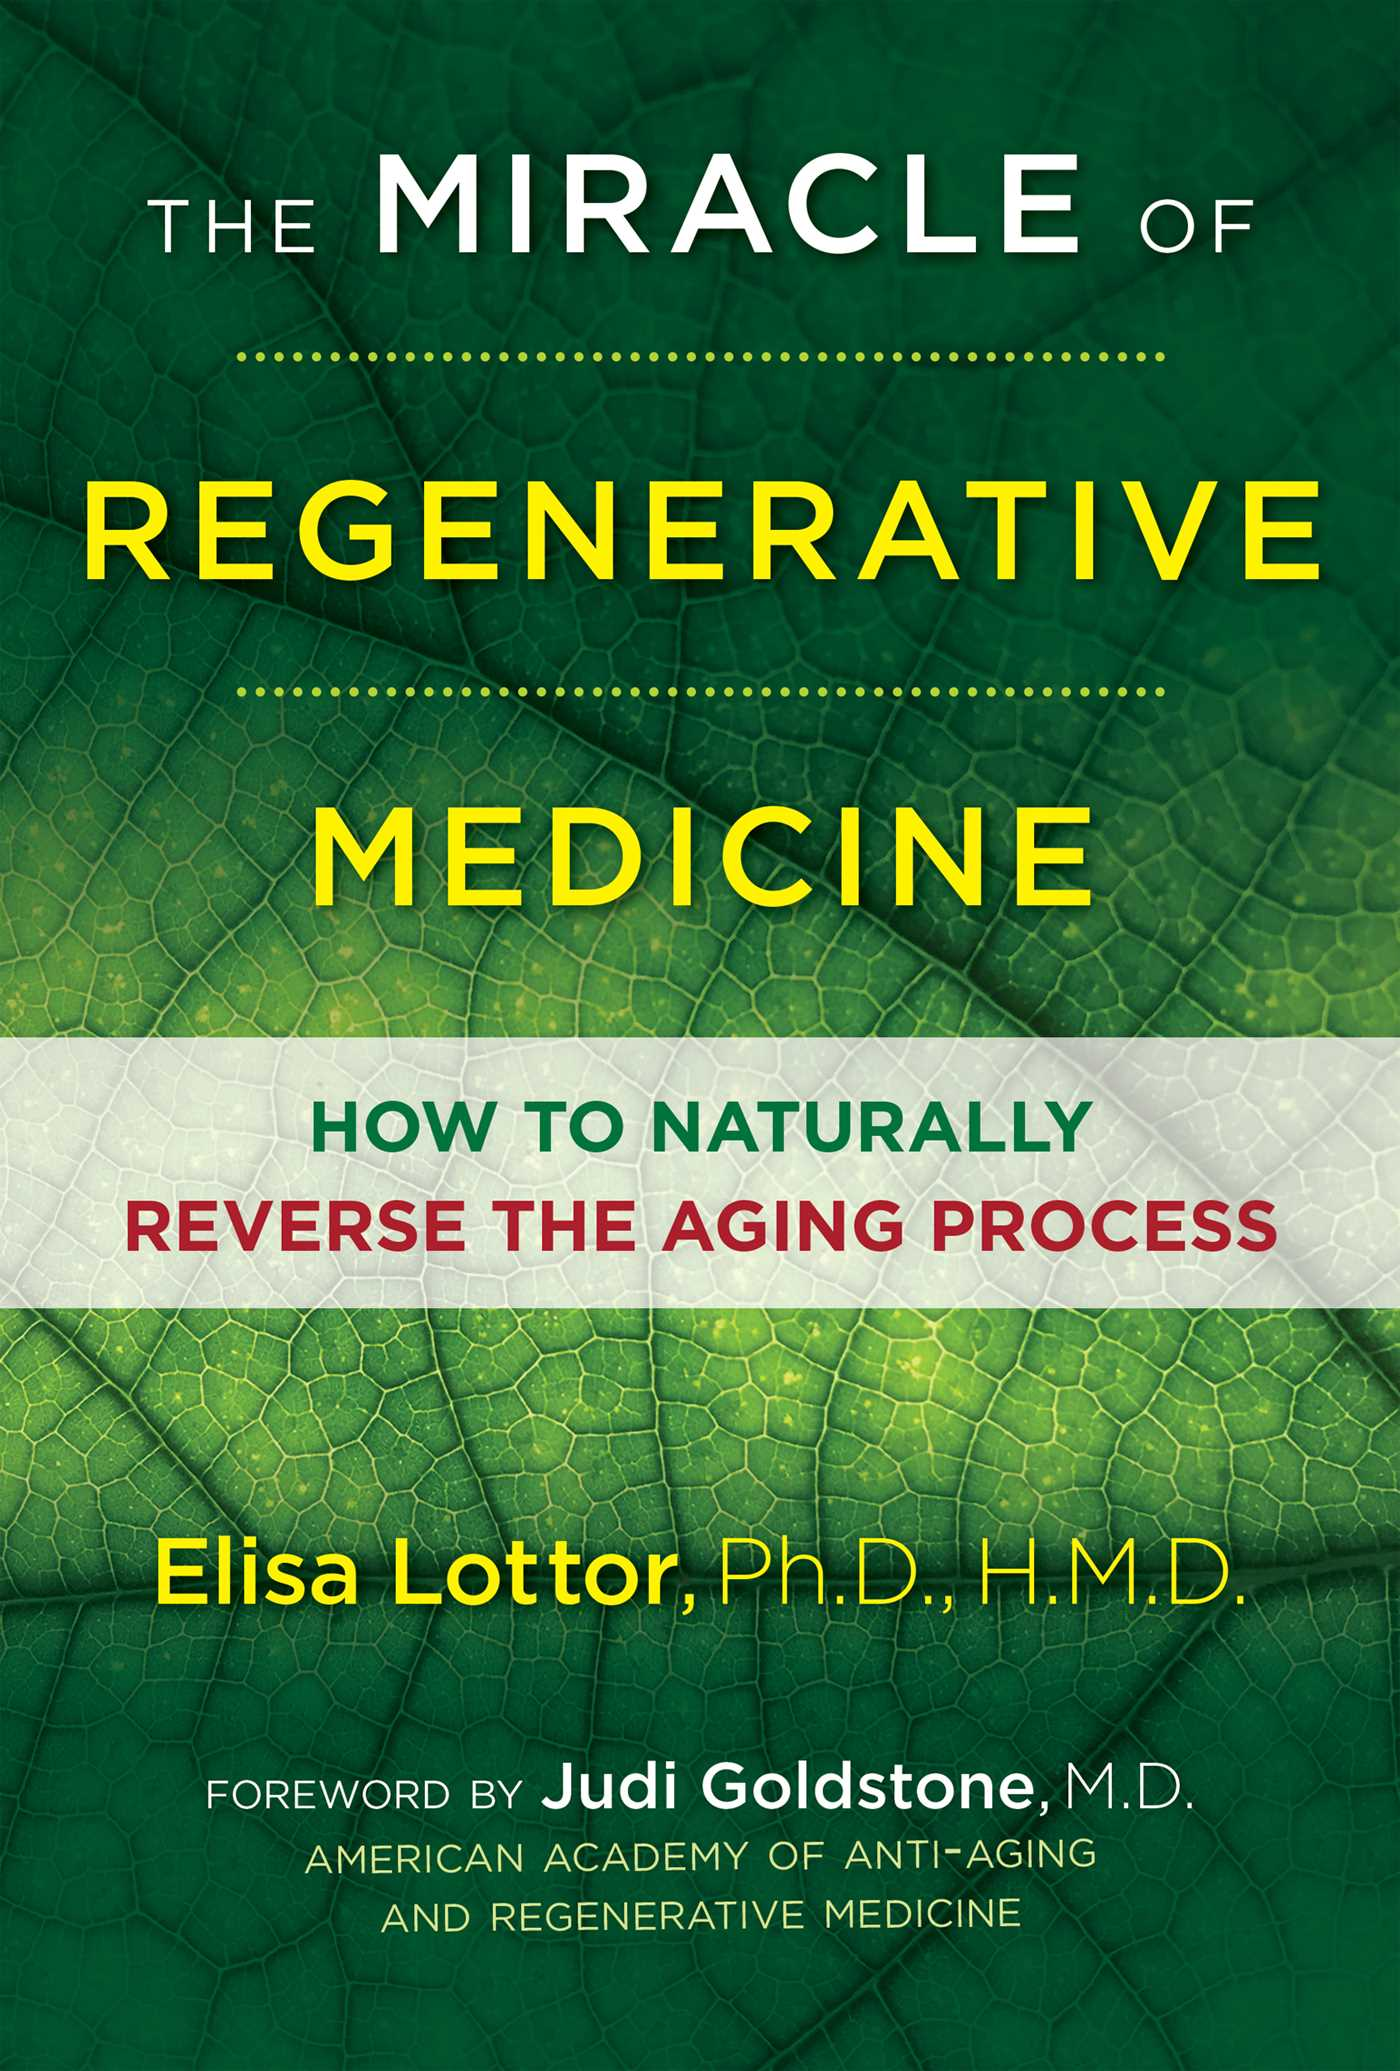 The miracle of regenerative medicine 9781620556047 hr